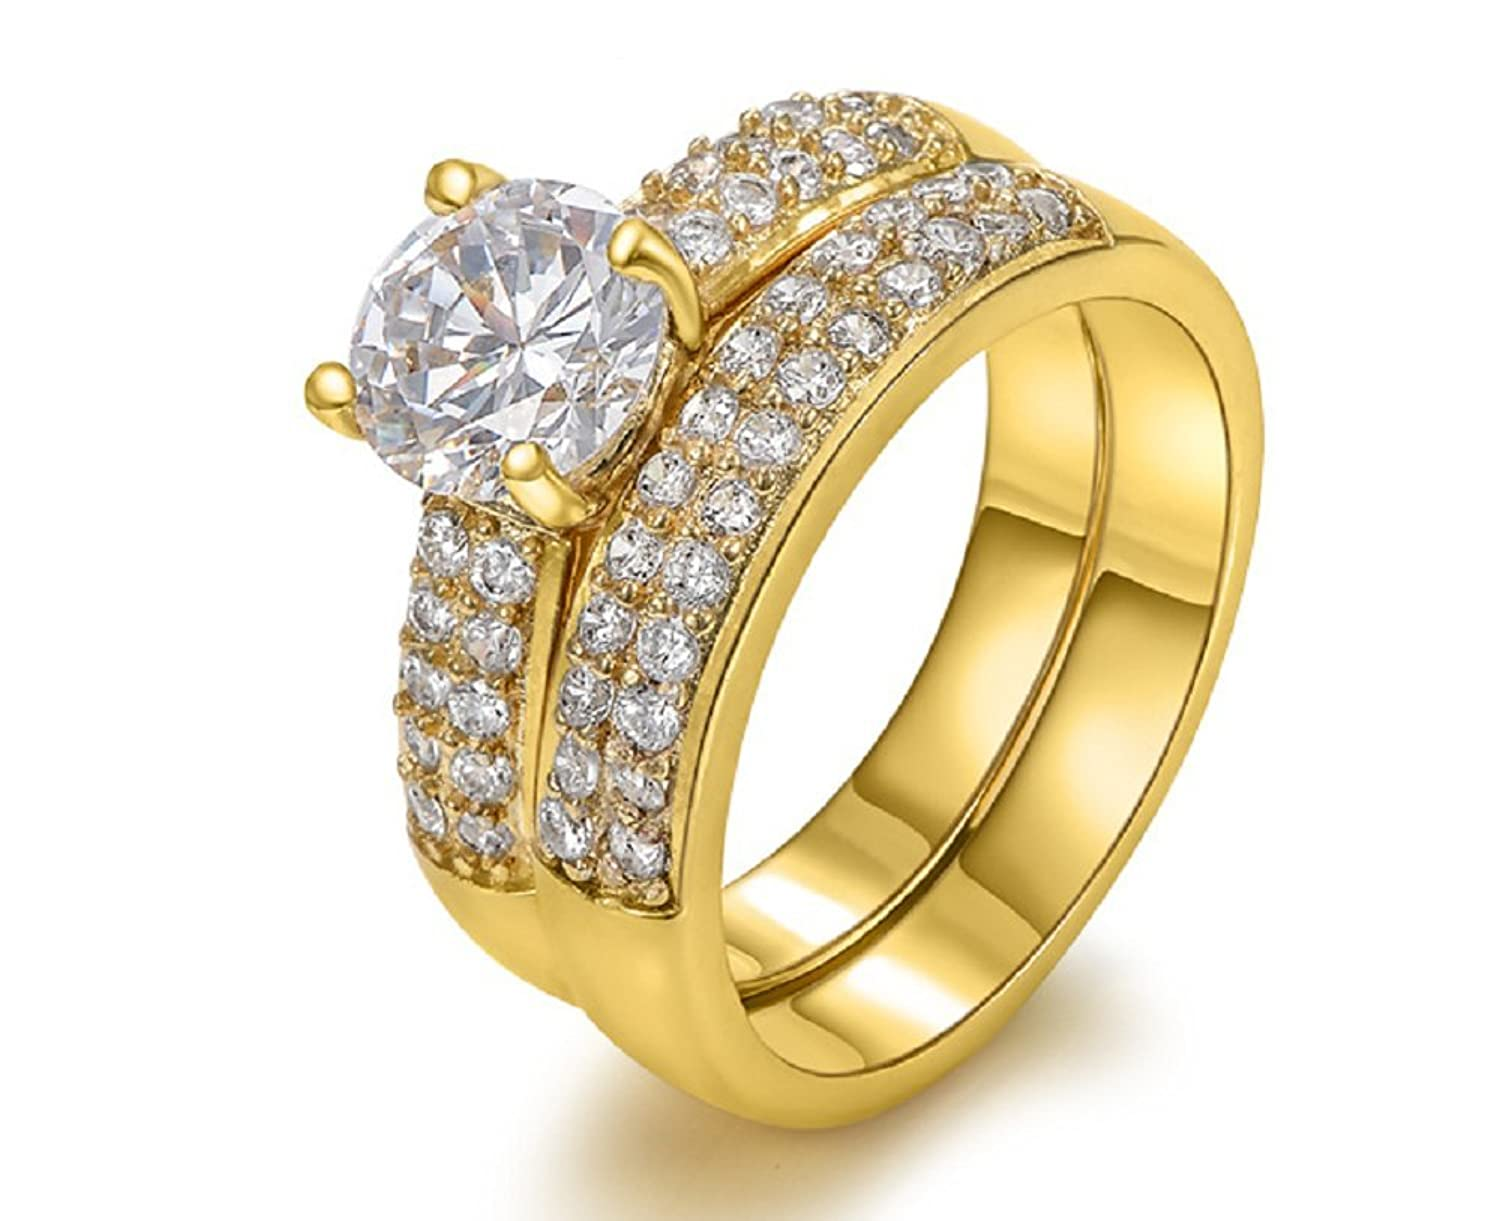 amazoncom the new 18 karat gold ring wedding ring engagement ring jewelry wholesale 6 jewelry - Indian Wedding Rings